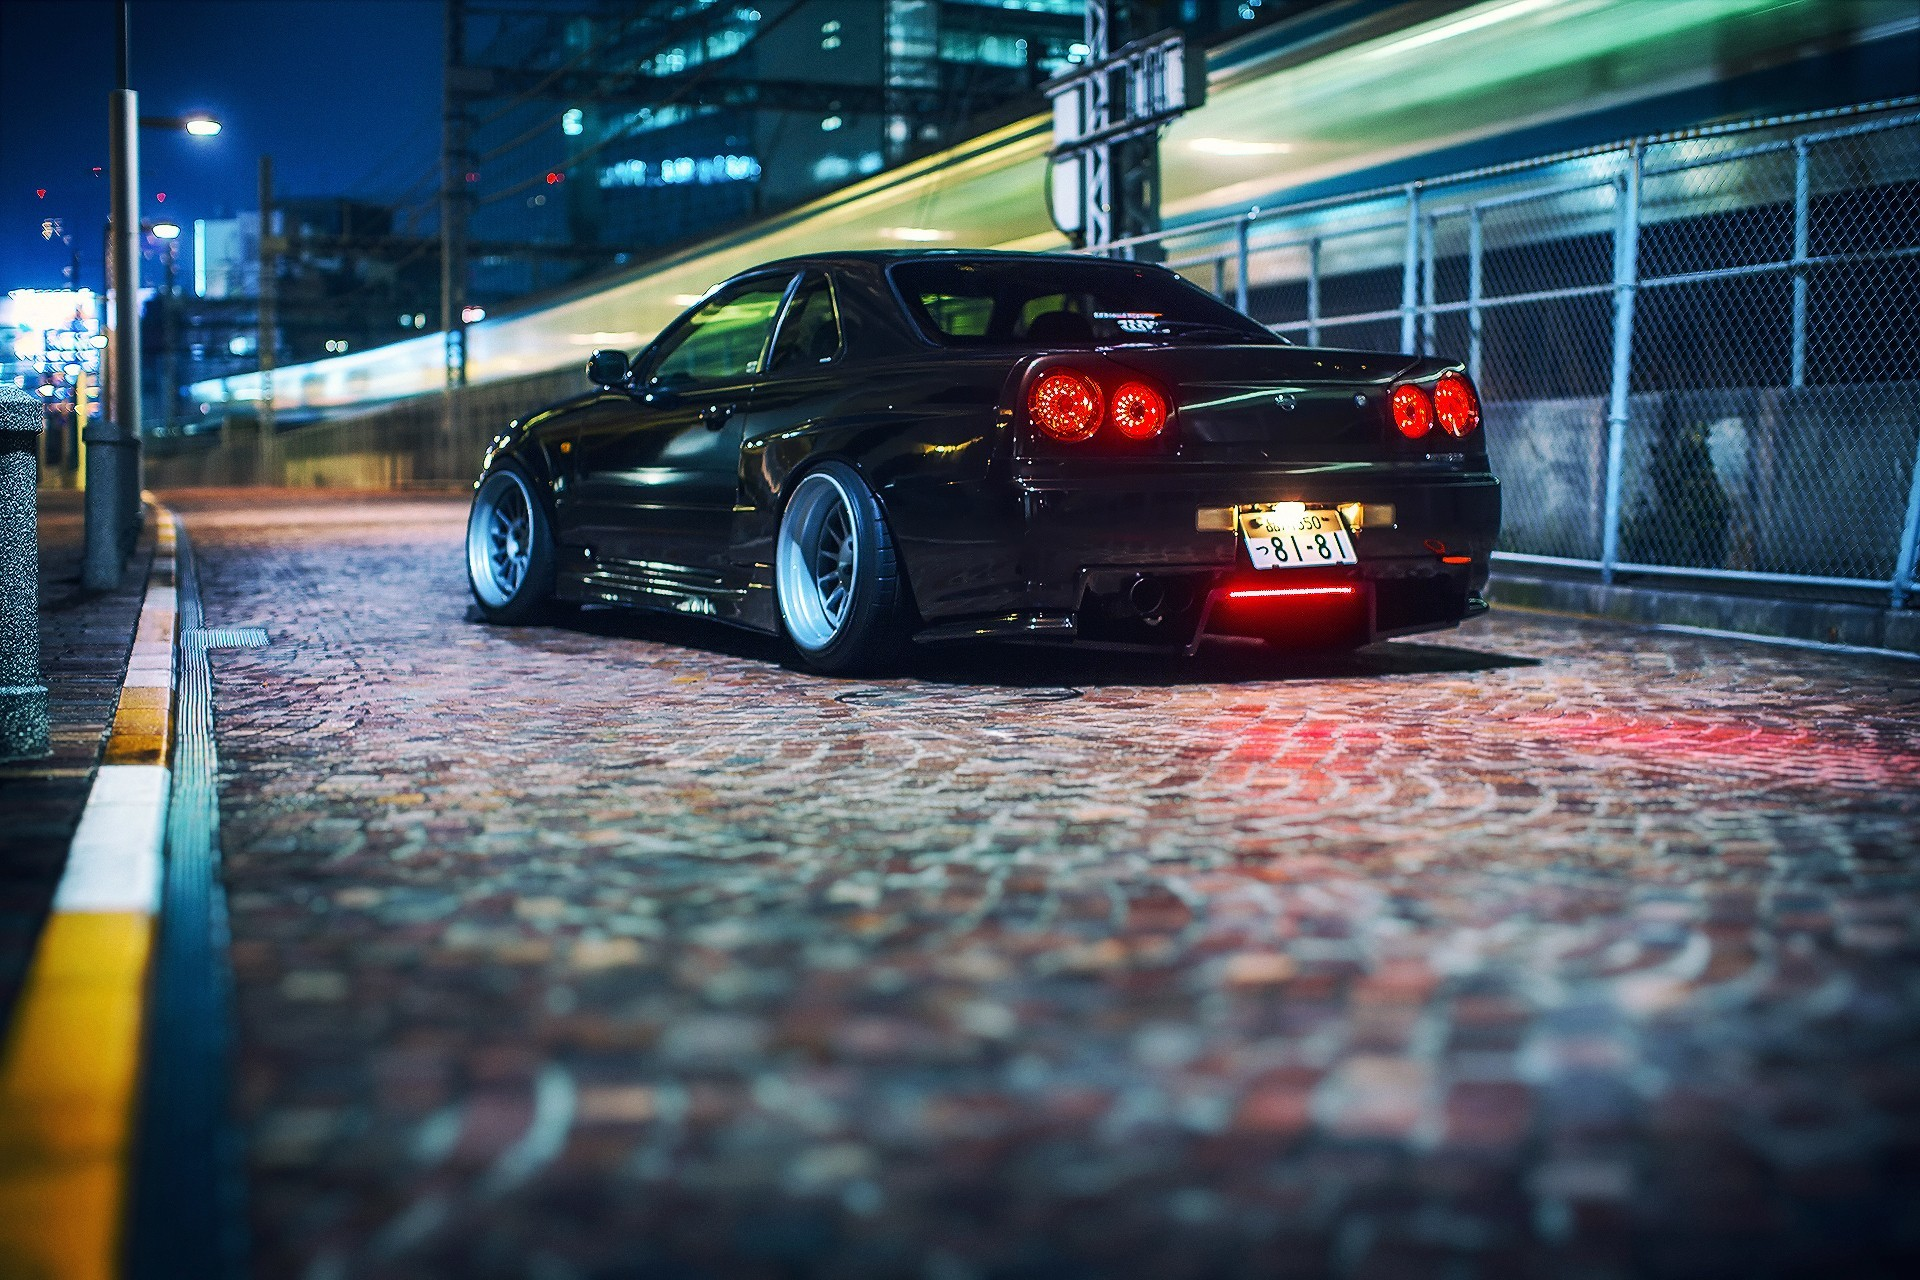 1920x1280 Download Original Wallpaper Category:cars ...